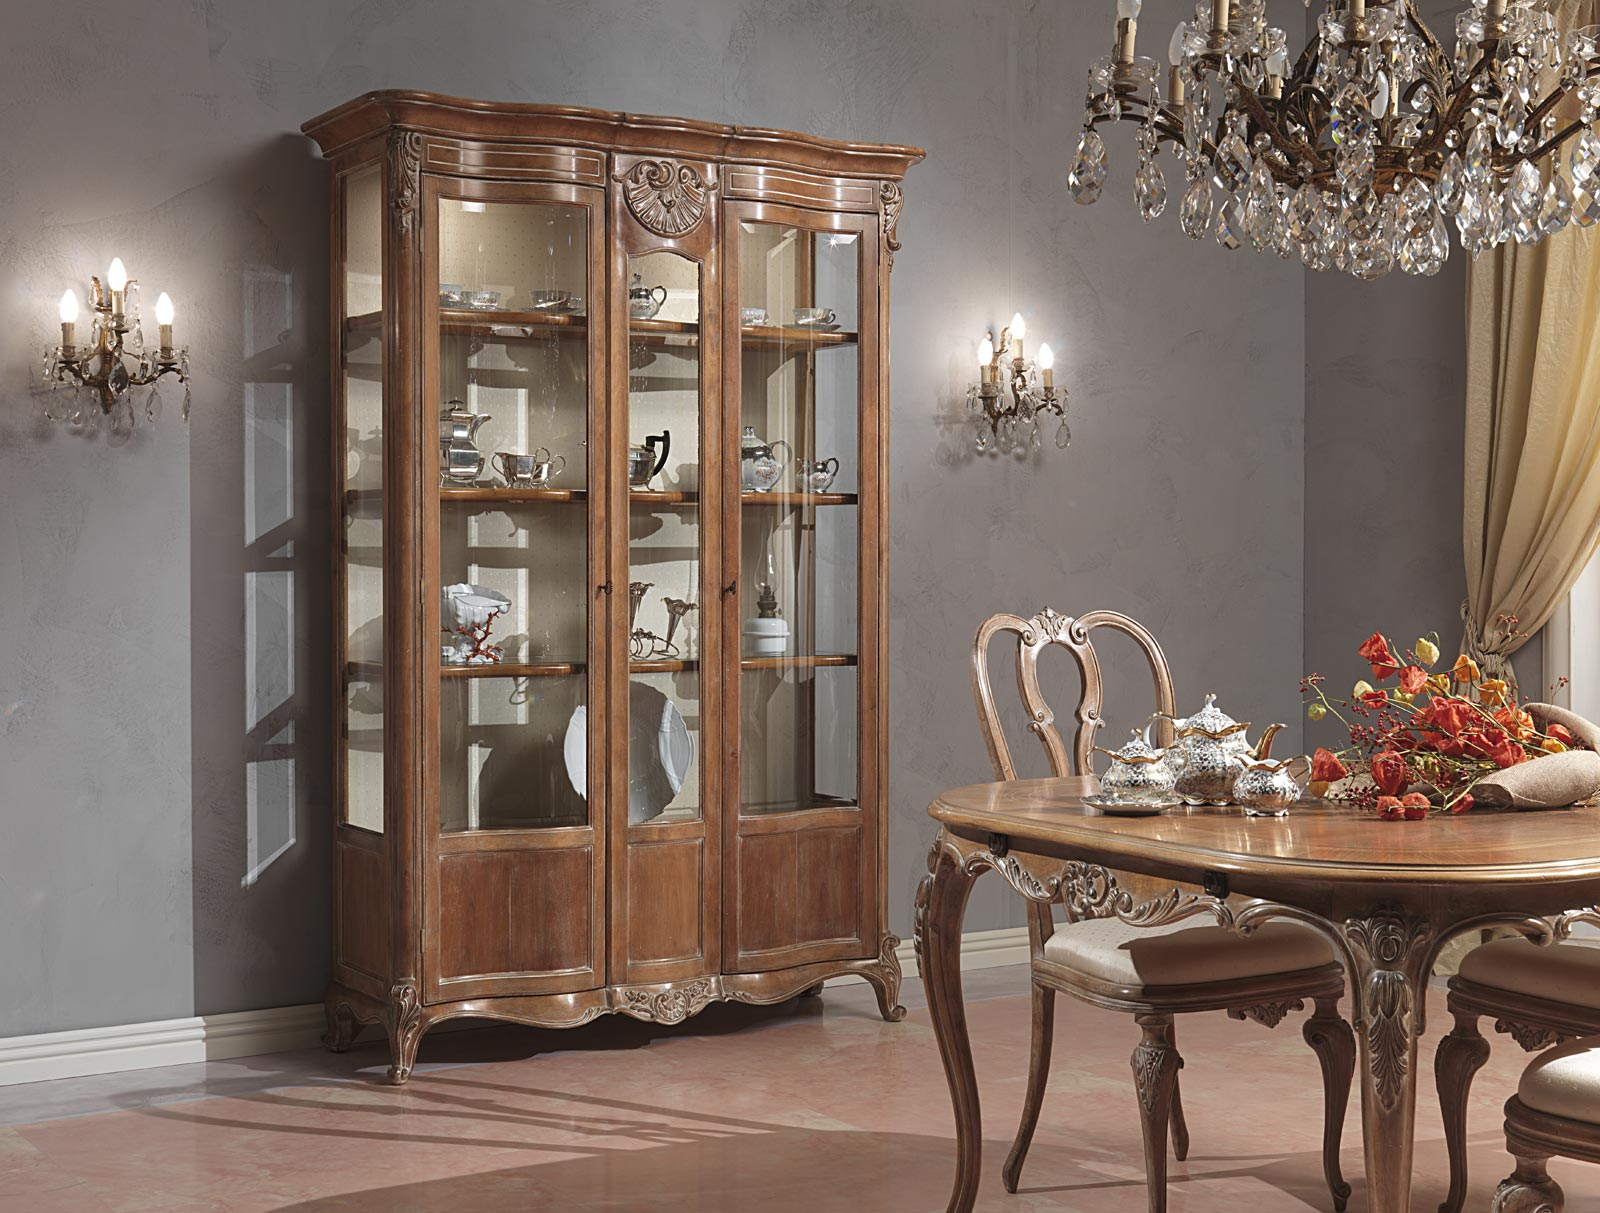 Paris dining room in louis xv style vimercati classic furniture - Dining room showcase designs ...